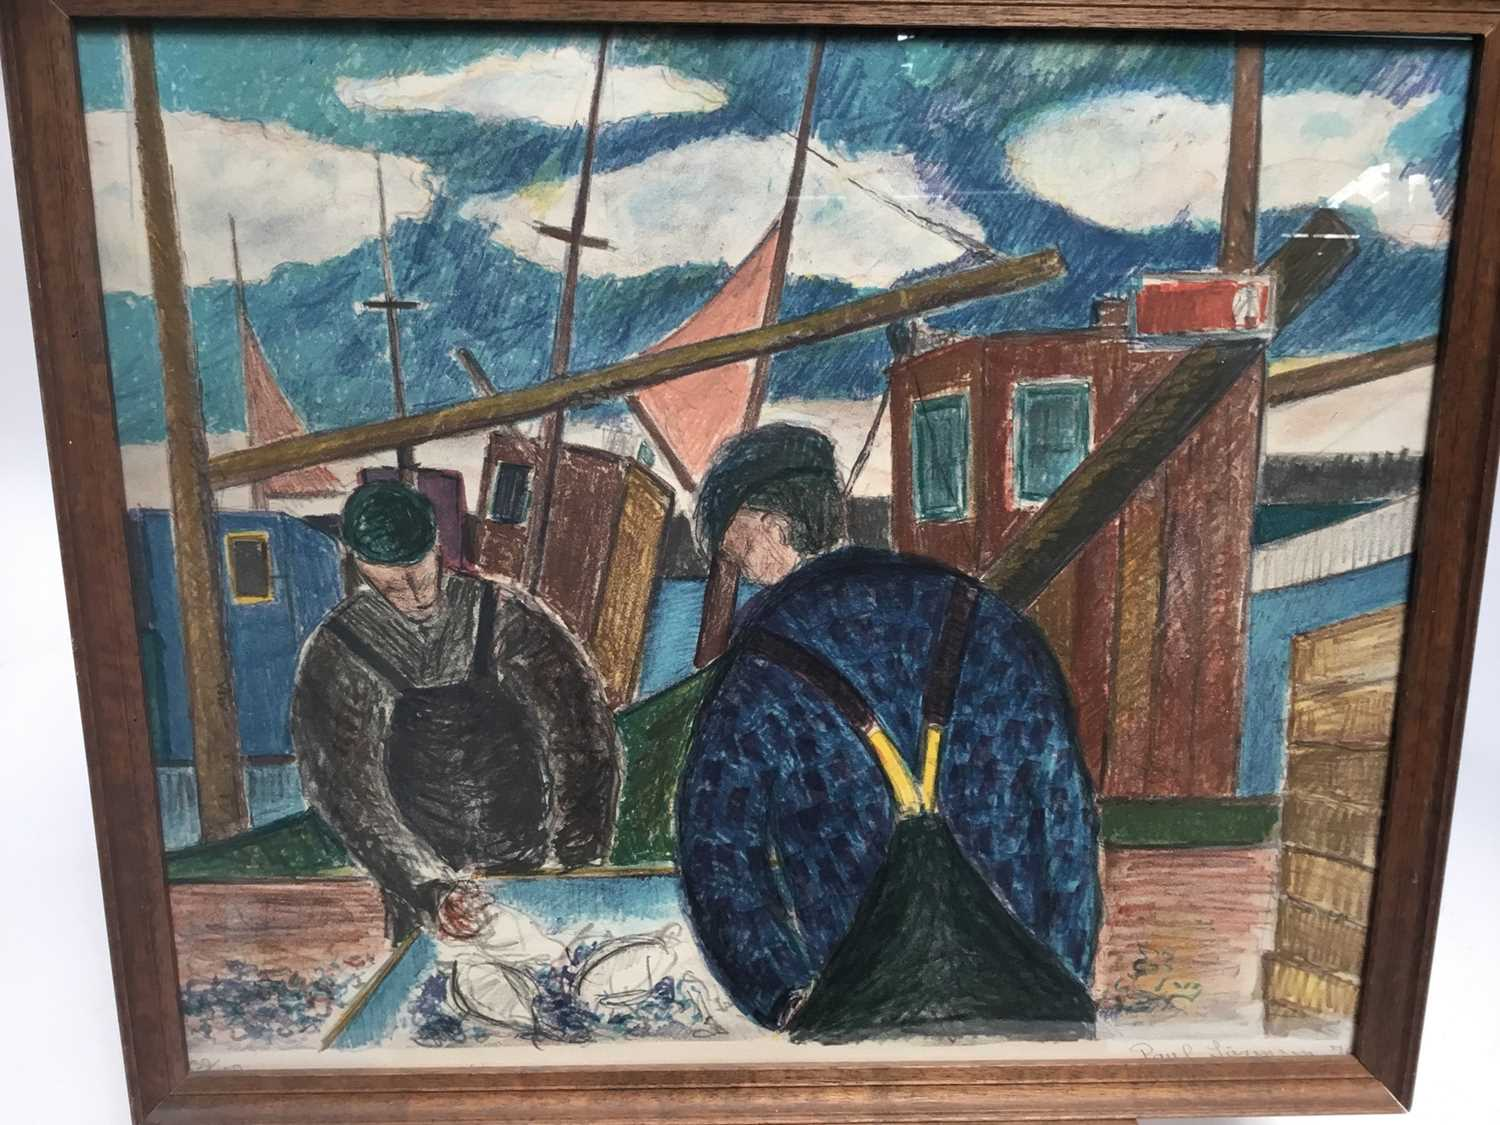 Lot 14-Scandinavian school (20th century) lithograph - Fishermen